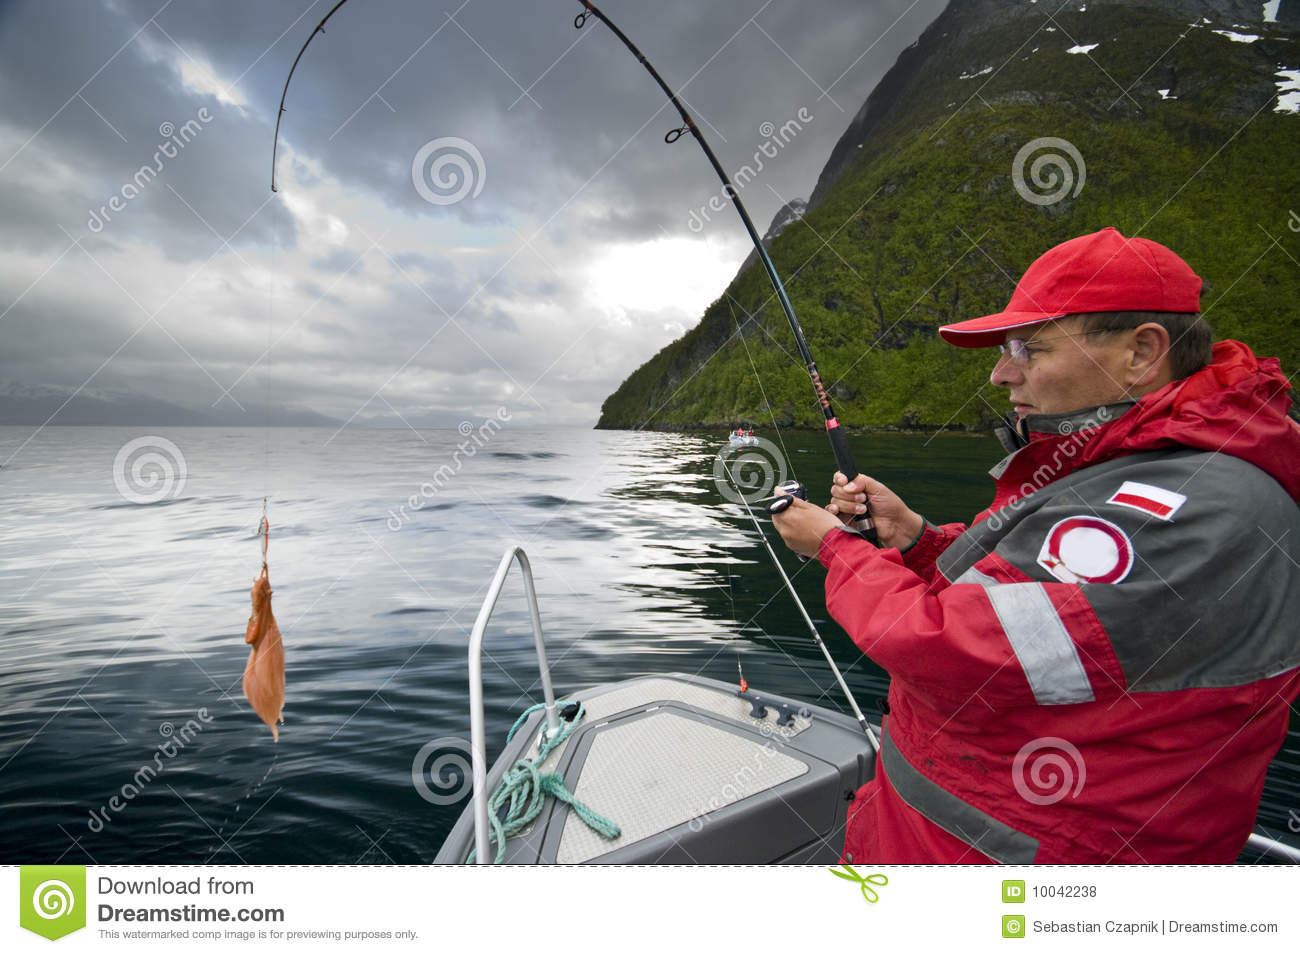 Man Catching Fish Stock Photo Image Of Outdoor Boat 10042238